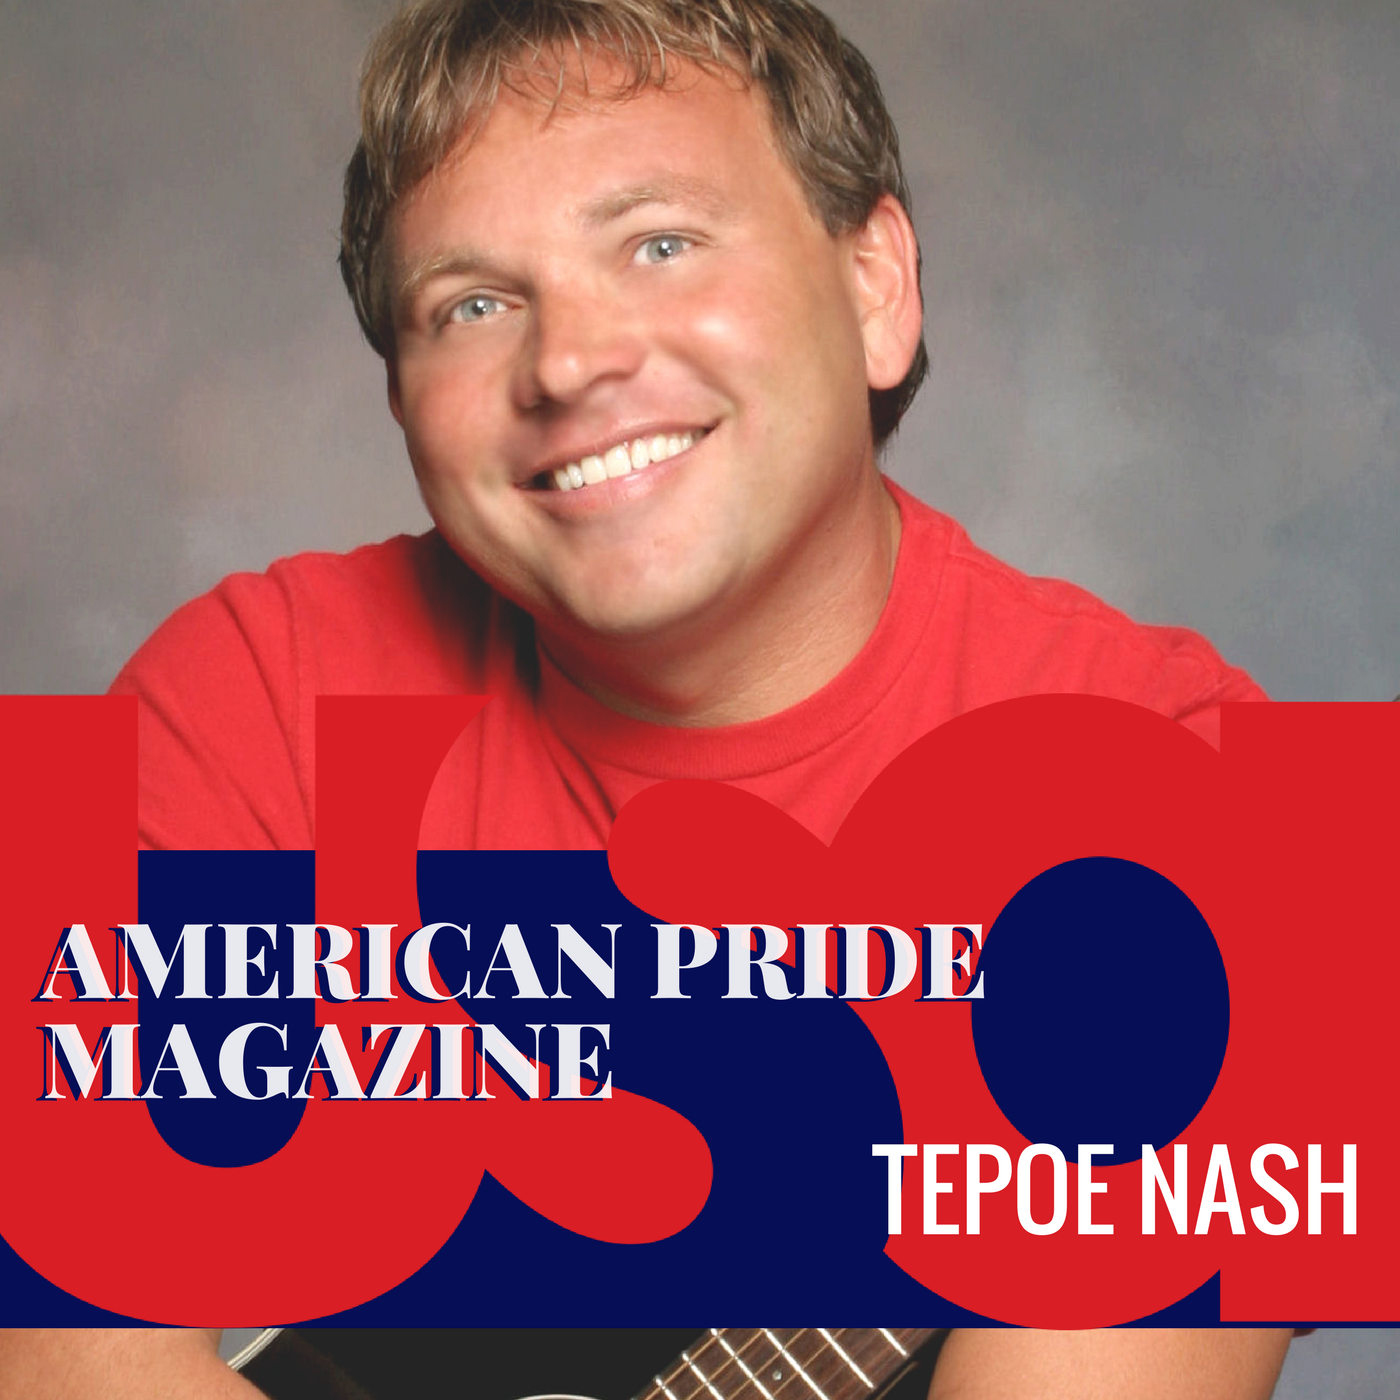 Nashville Songwriter Tepoe Nash on Creating Your Own Style